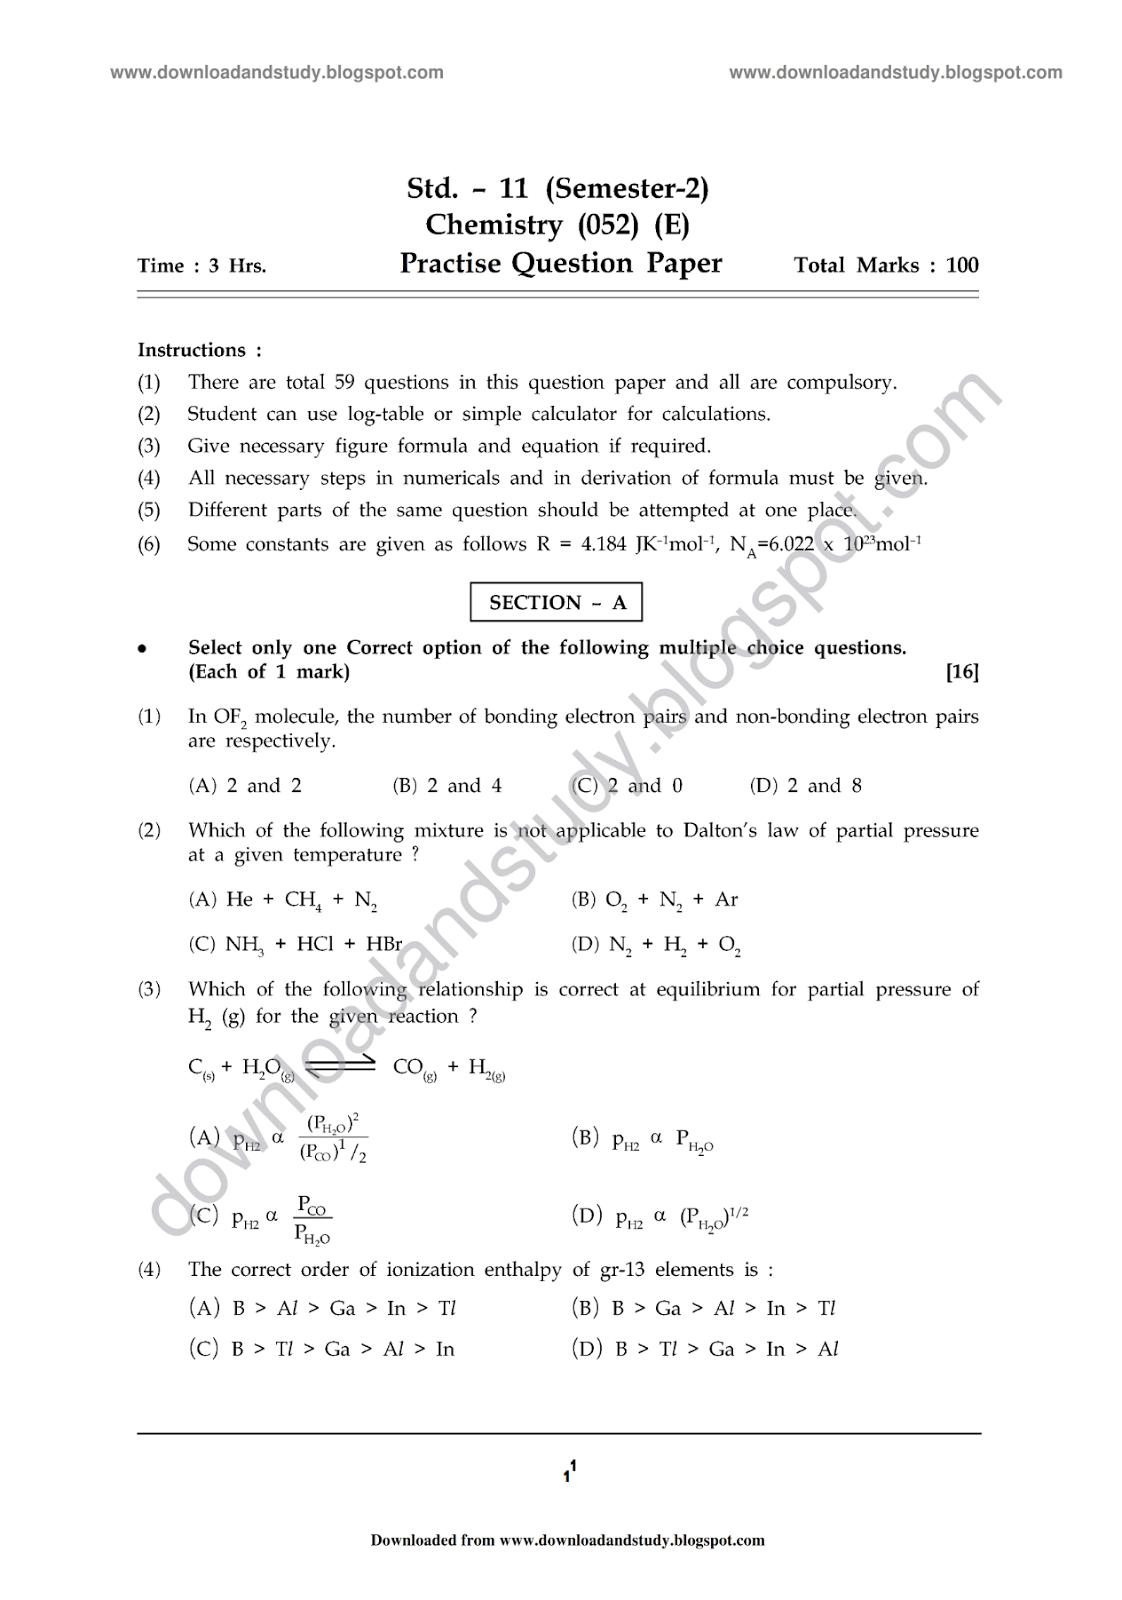 Download study chemistry sem 2 practise paper 1 gshseb practise paper gujarat board 11th science stream semester 2 chemistry 052 e malvernweather Choice Image